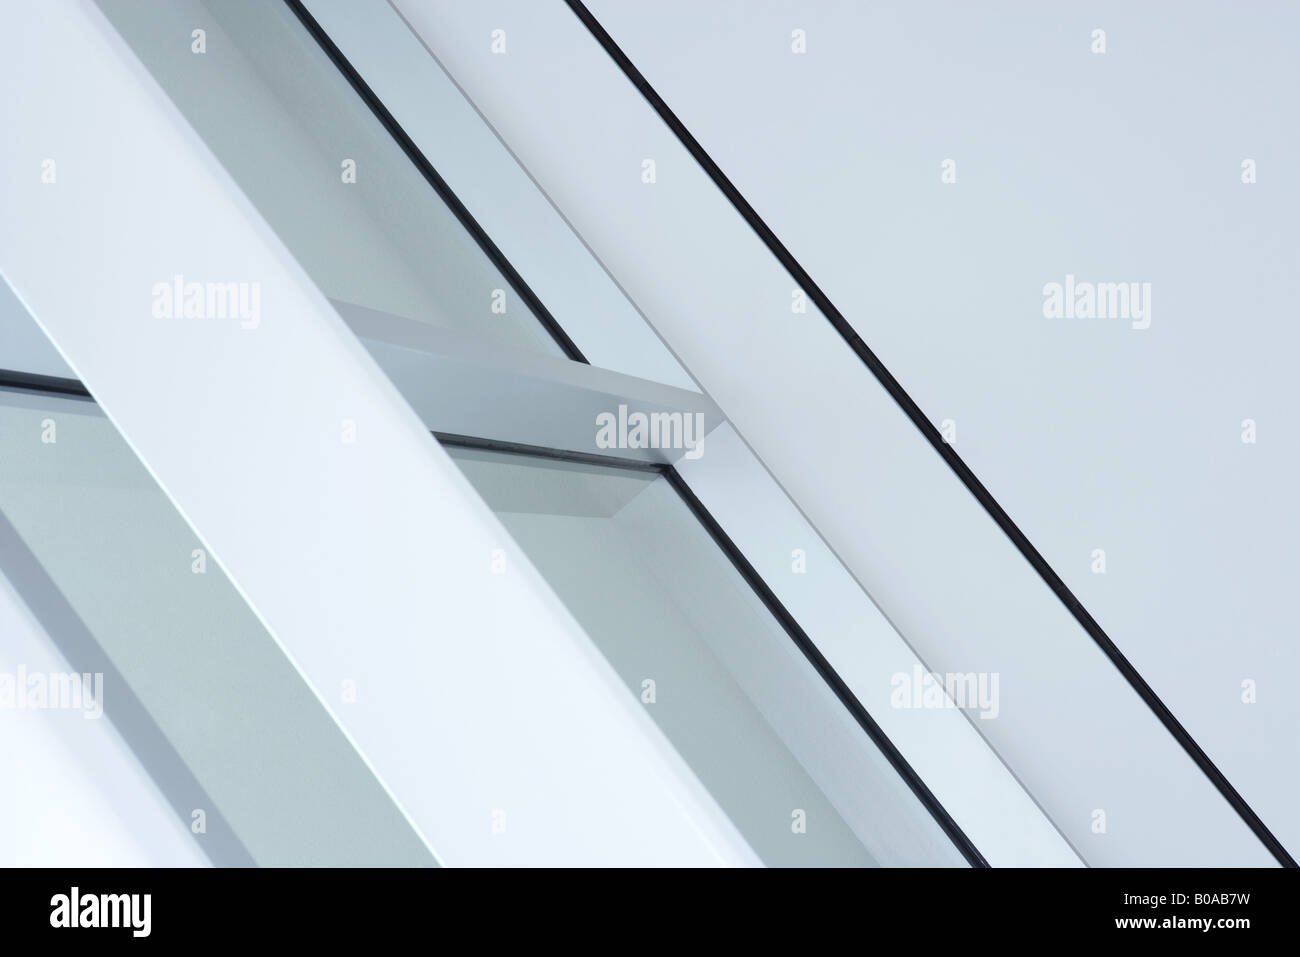 Architectural detail, cropped - Stock Image